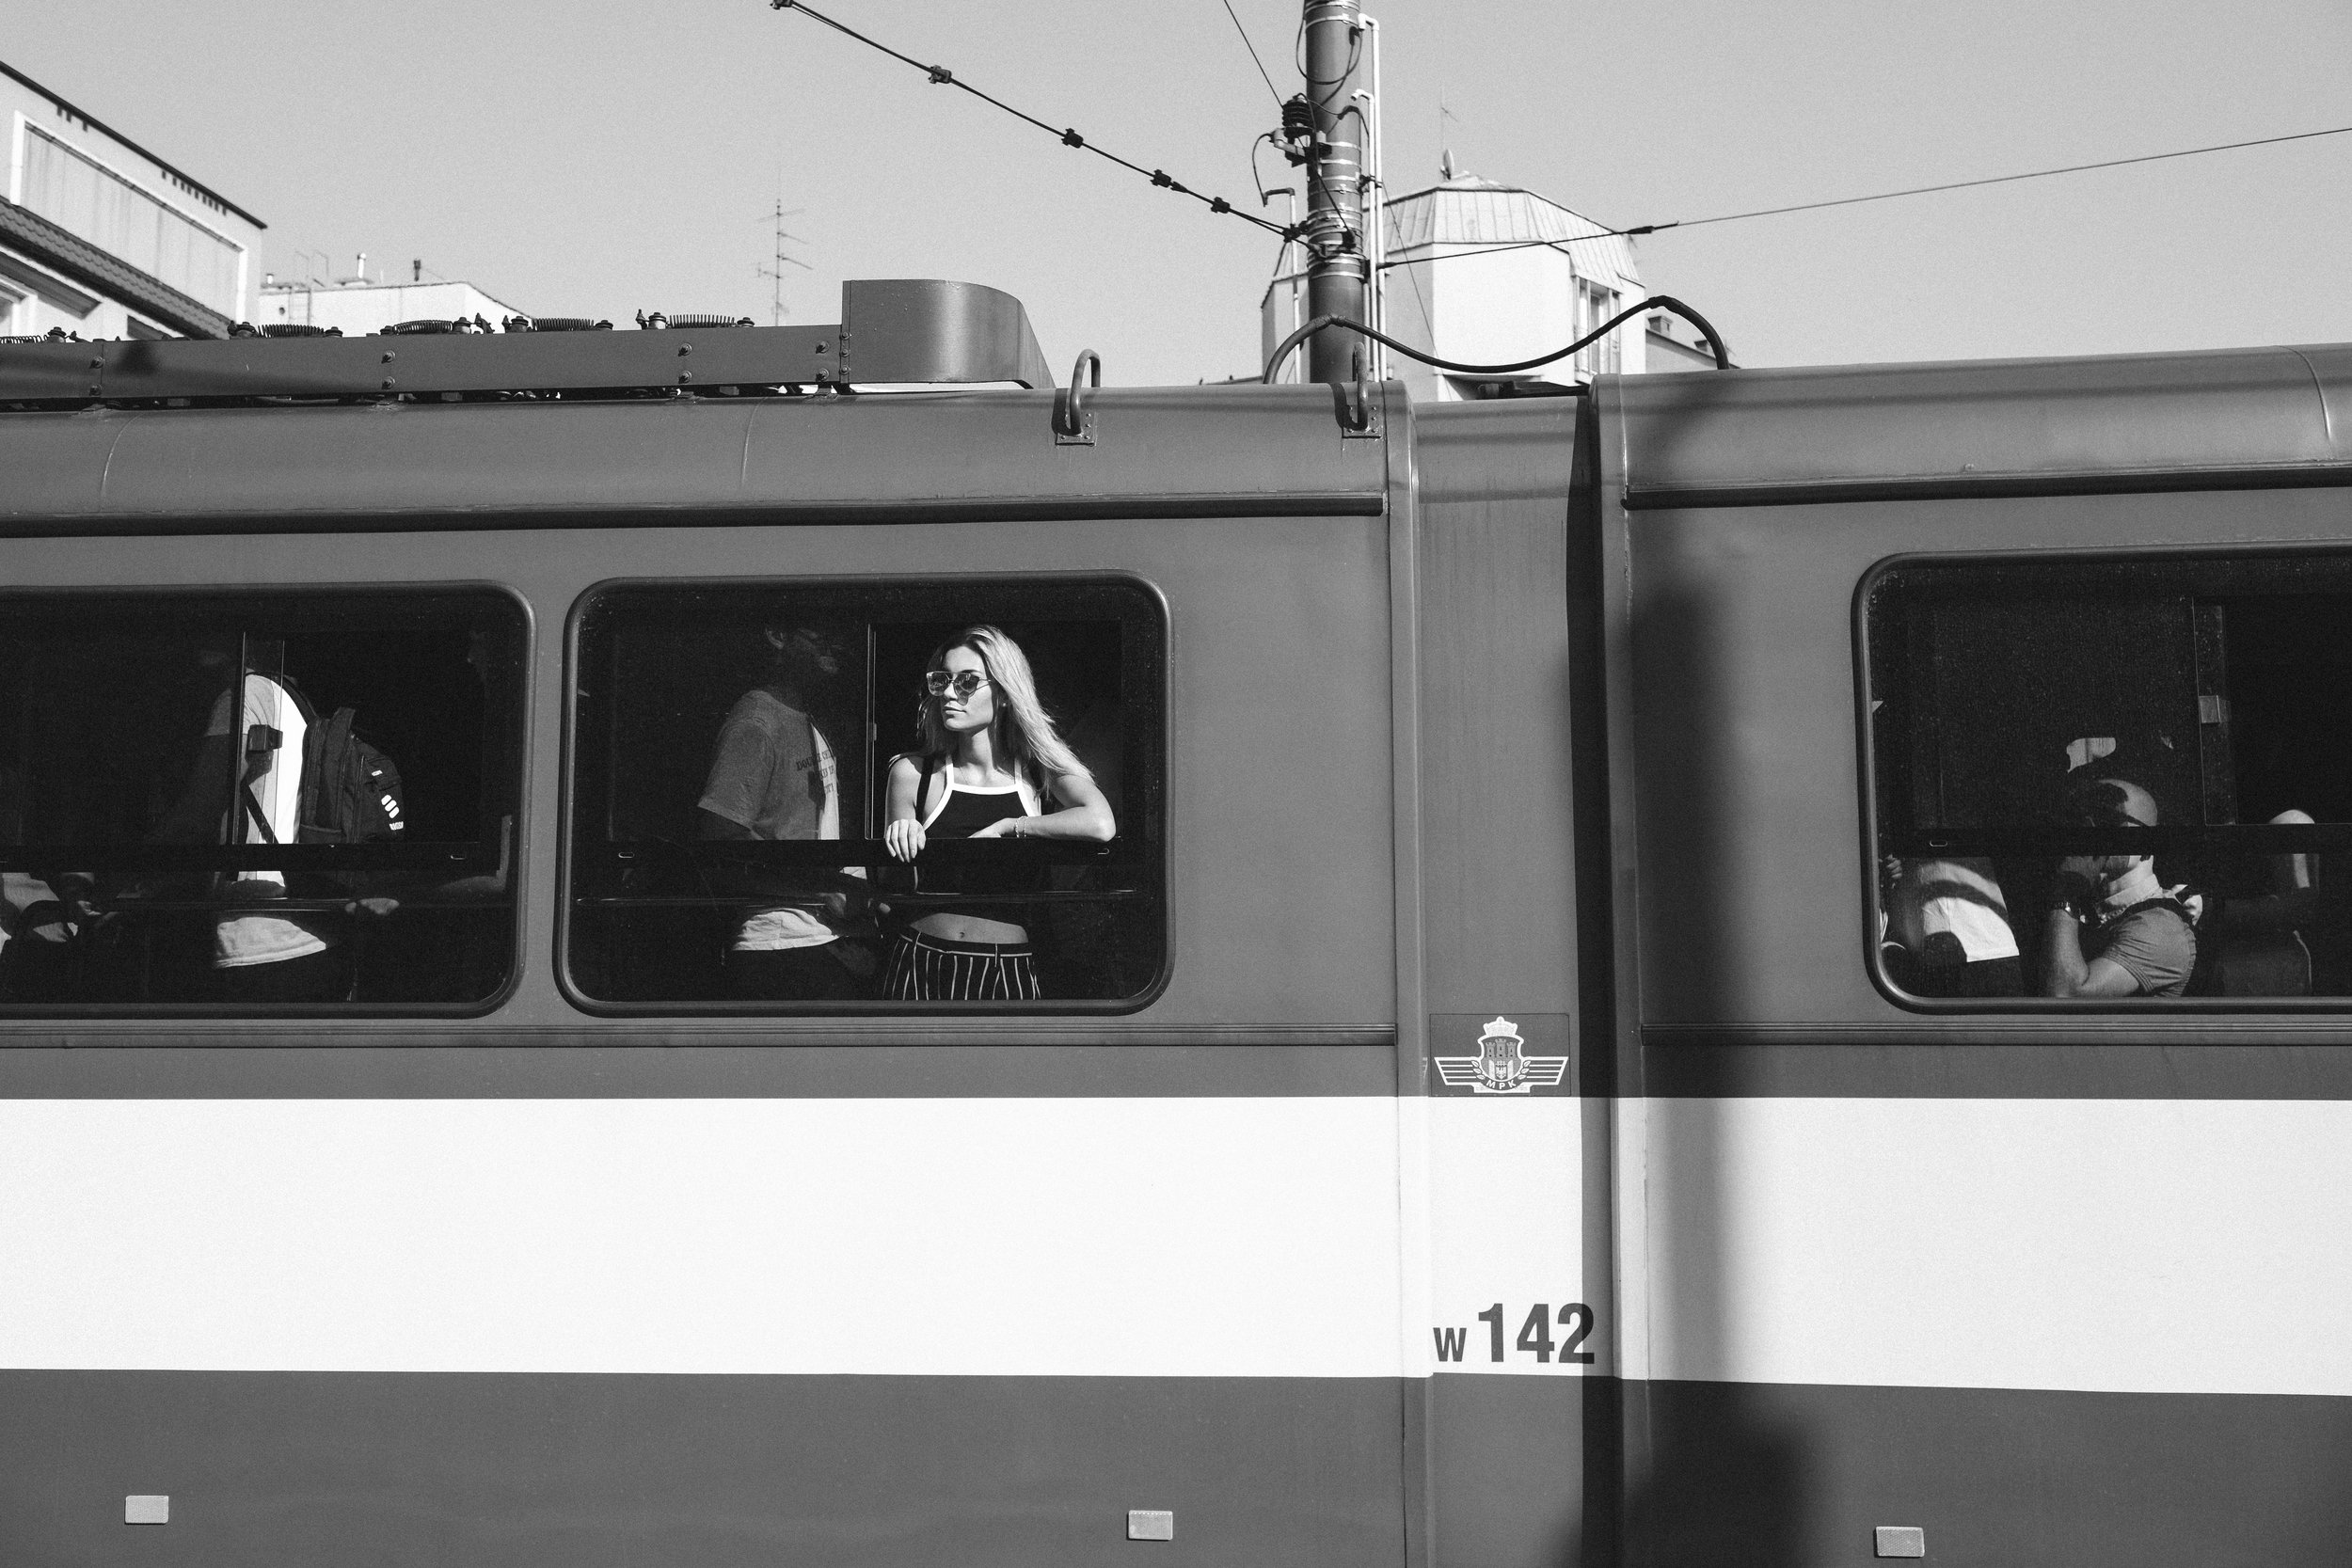 A young woman looks out the window from a tram on a summer day in Krakow Poland